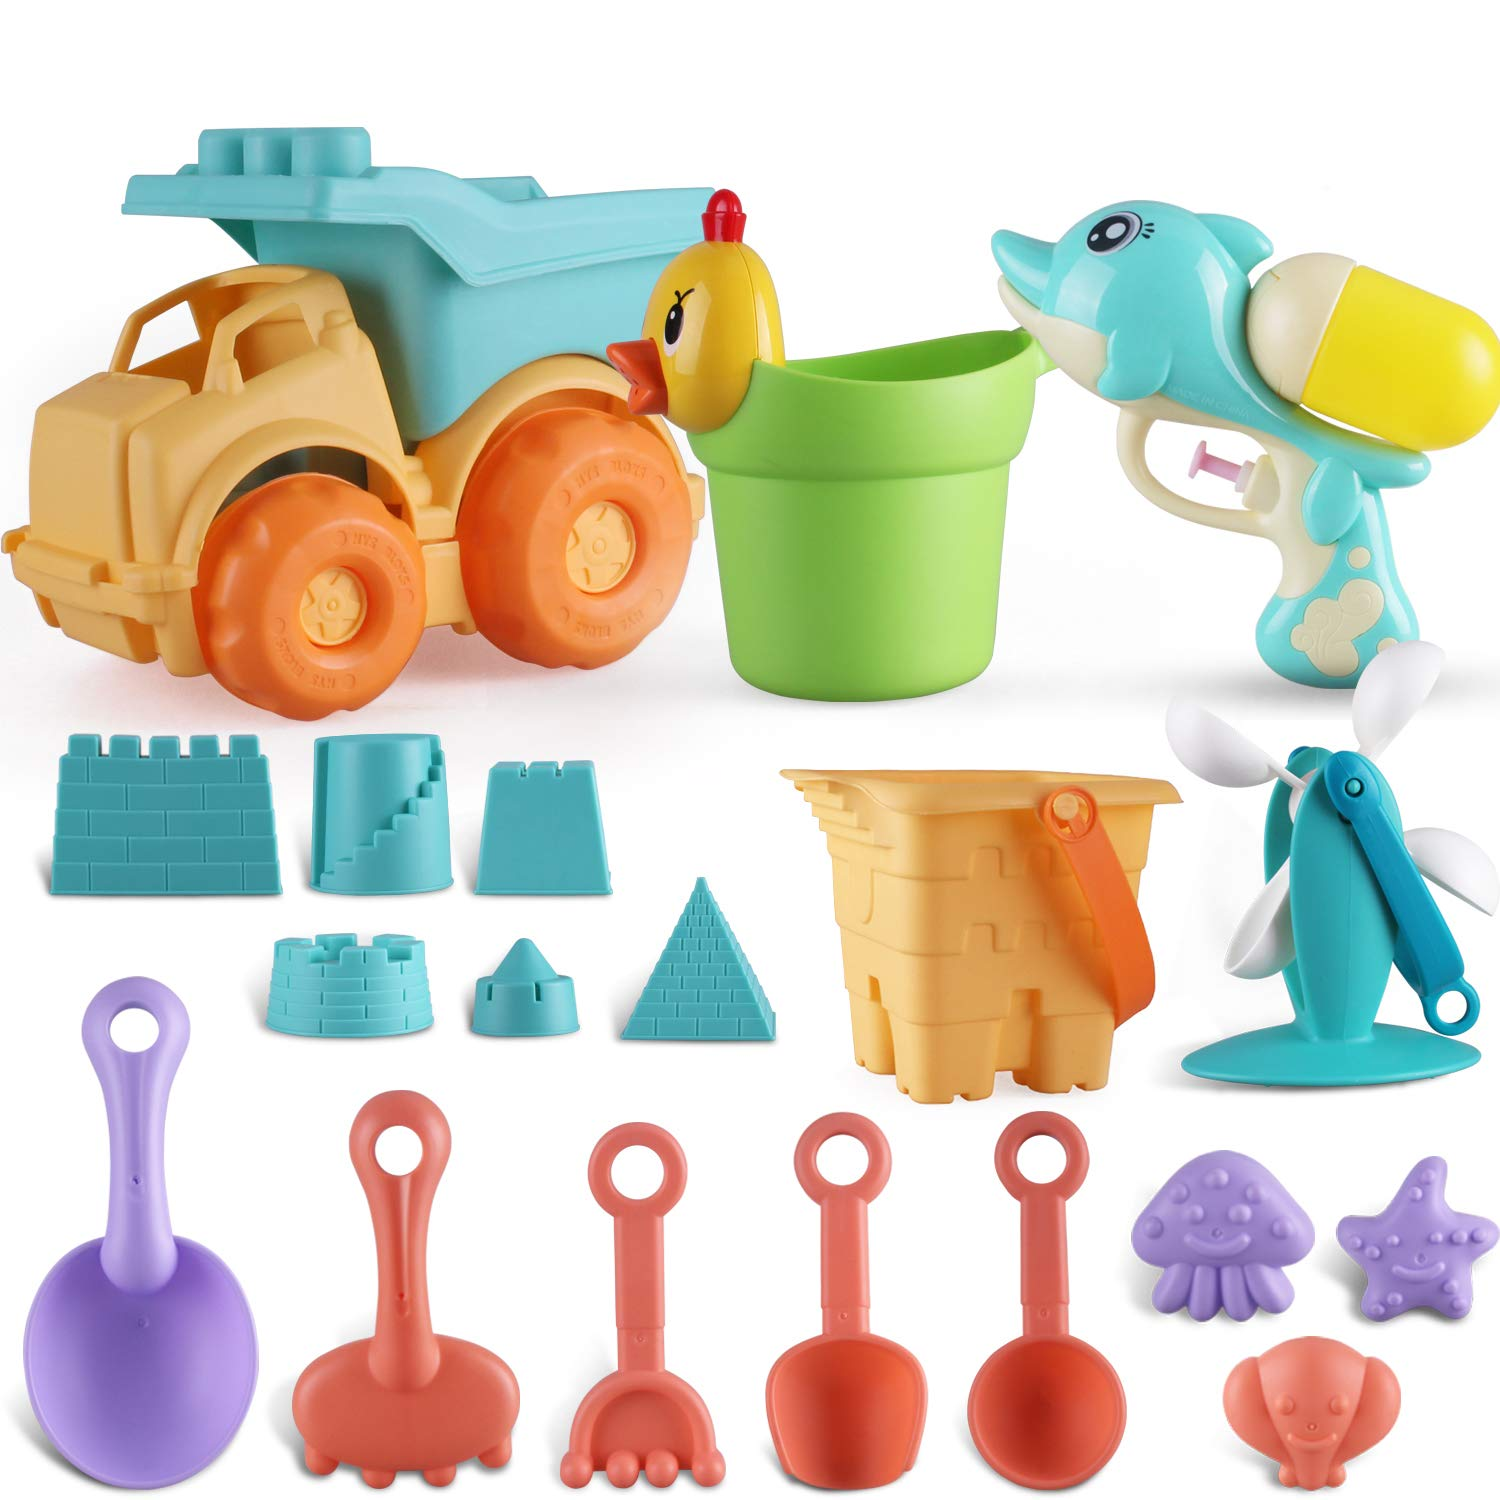 Parts3A Beach Toys Set for Kids,Beach Pail Set with Molds Bucket and Soft Plastic Pool Toy Set by Parts3A